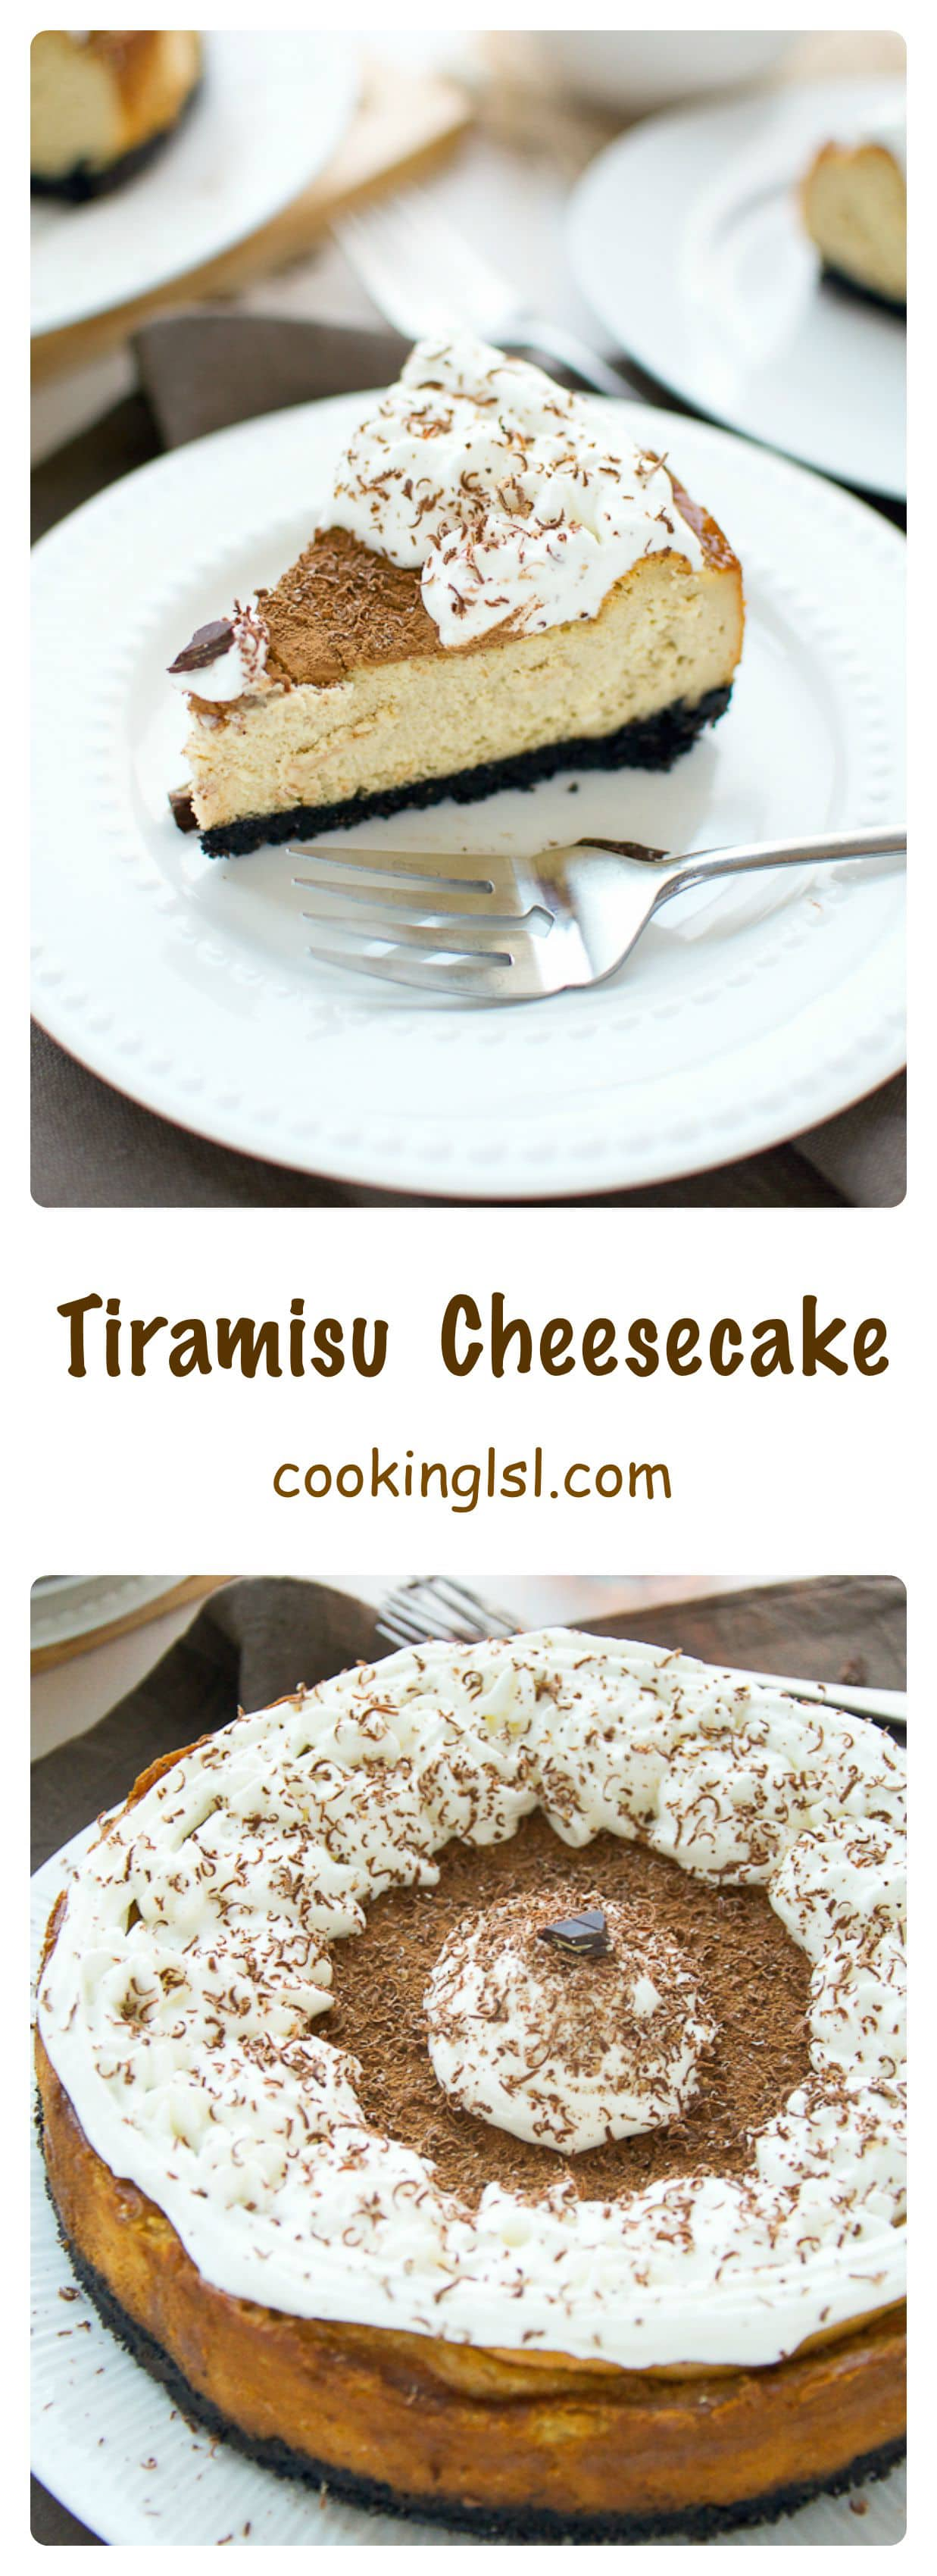 Tiramisu Cheesecake - Luscious, creamy and sweet coffee infused cheesecake with crumby Oreo cookie crust. Dusted with cocoa powder and topped with whipped cream, it combines two popular desserts - Tiramisu and Cheesecake.